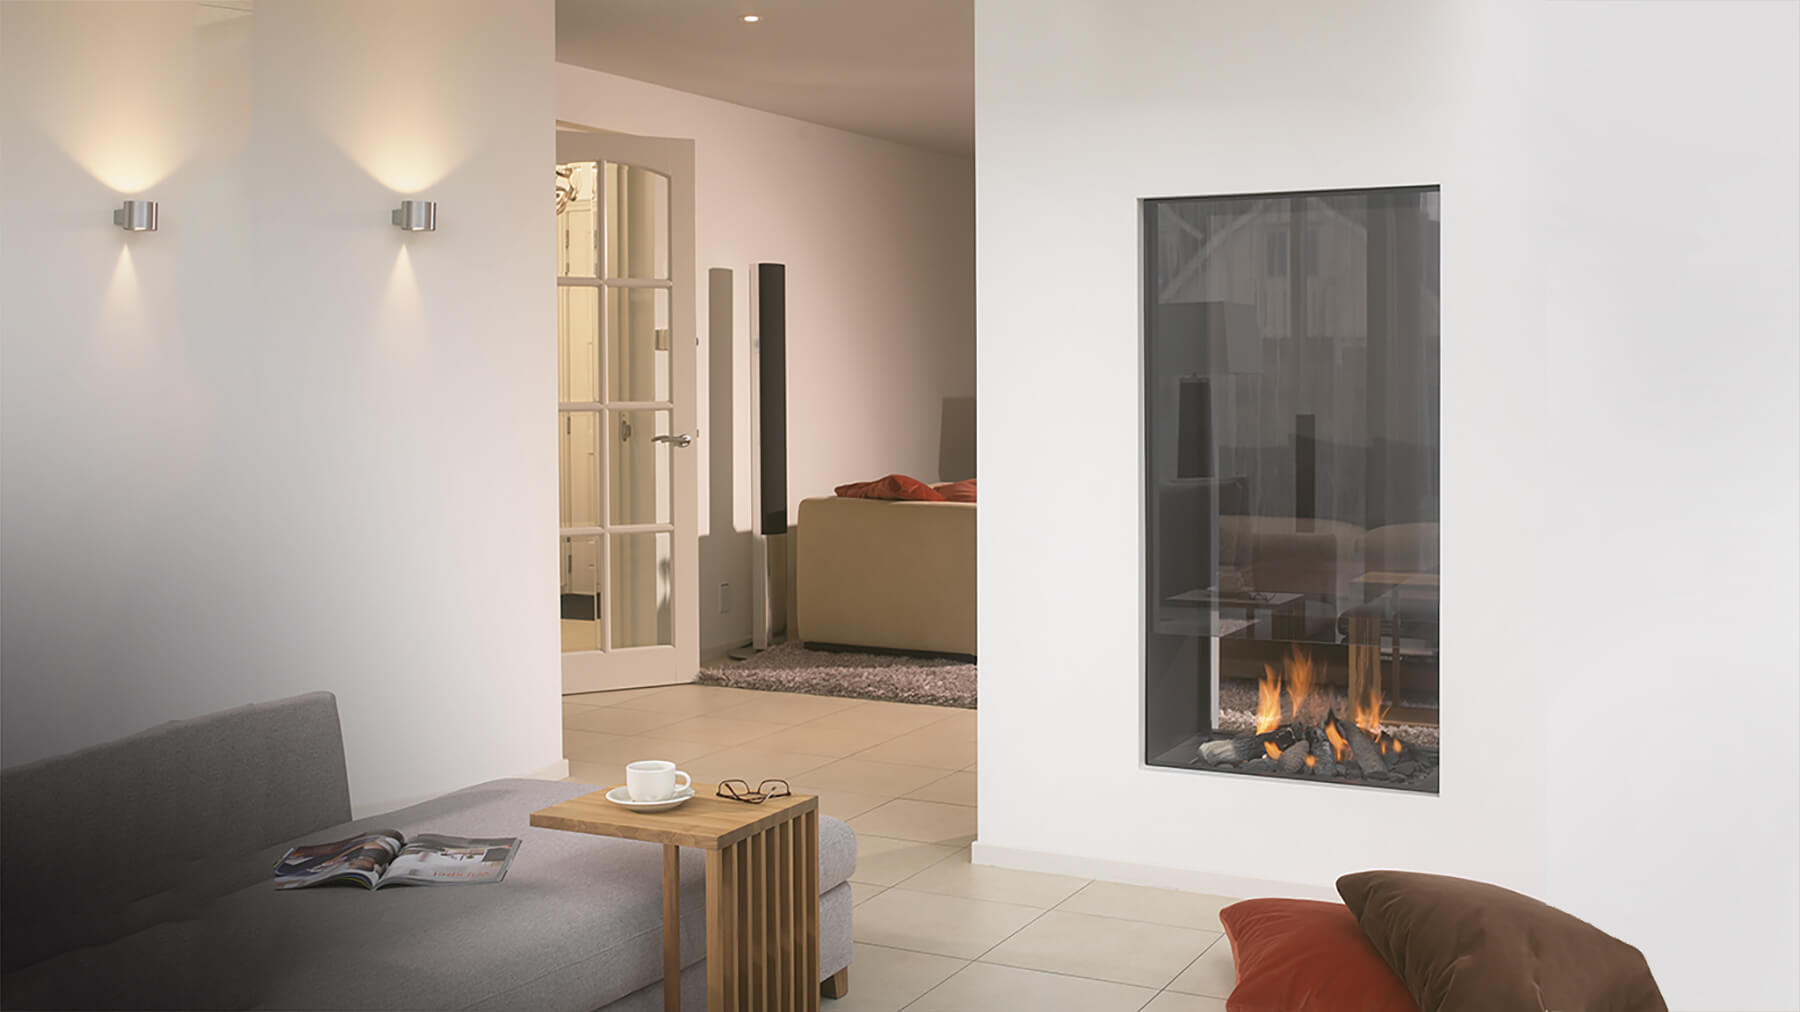 Two Sided Indoor Outdoor Gas Fireplace Double Sided Indoor Outdoor Gas Fireplace